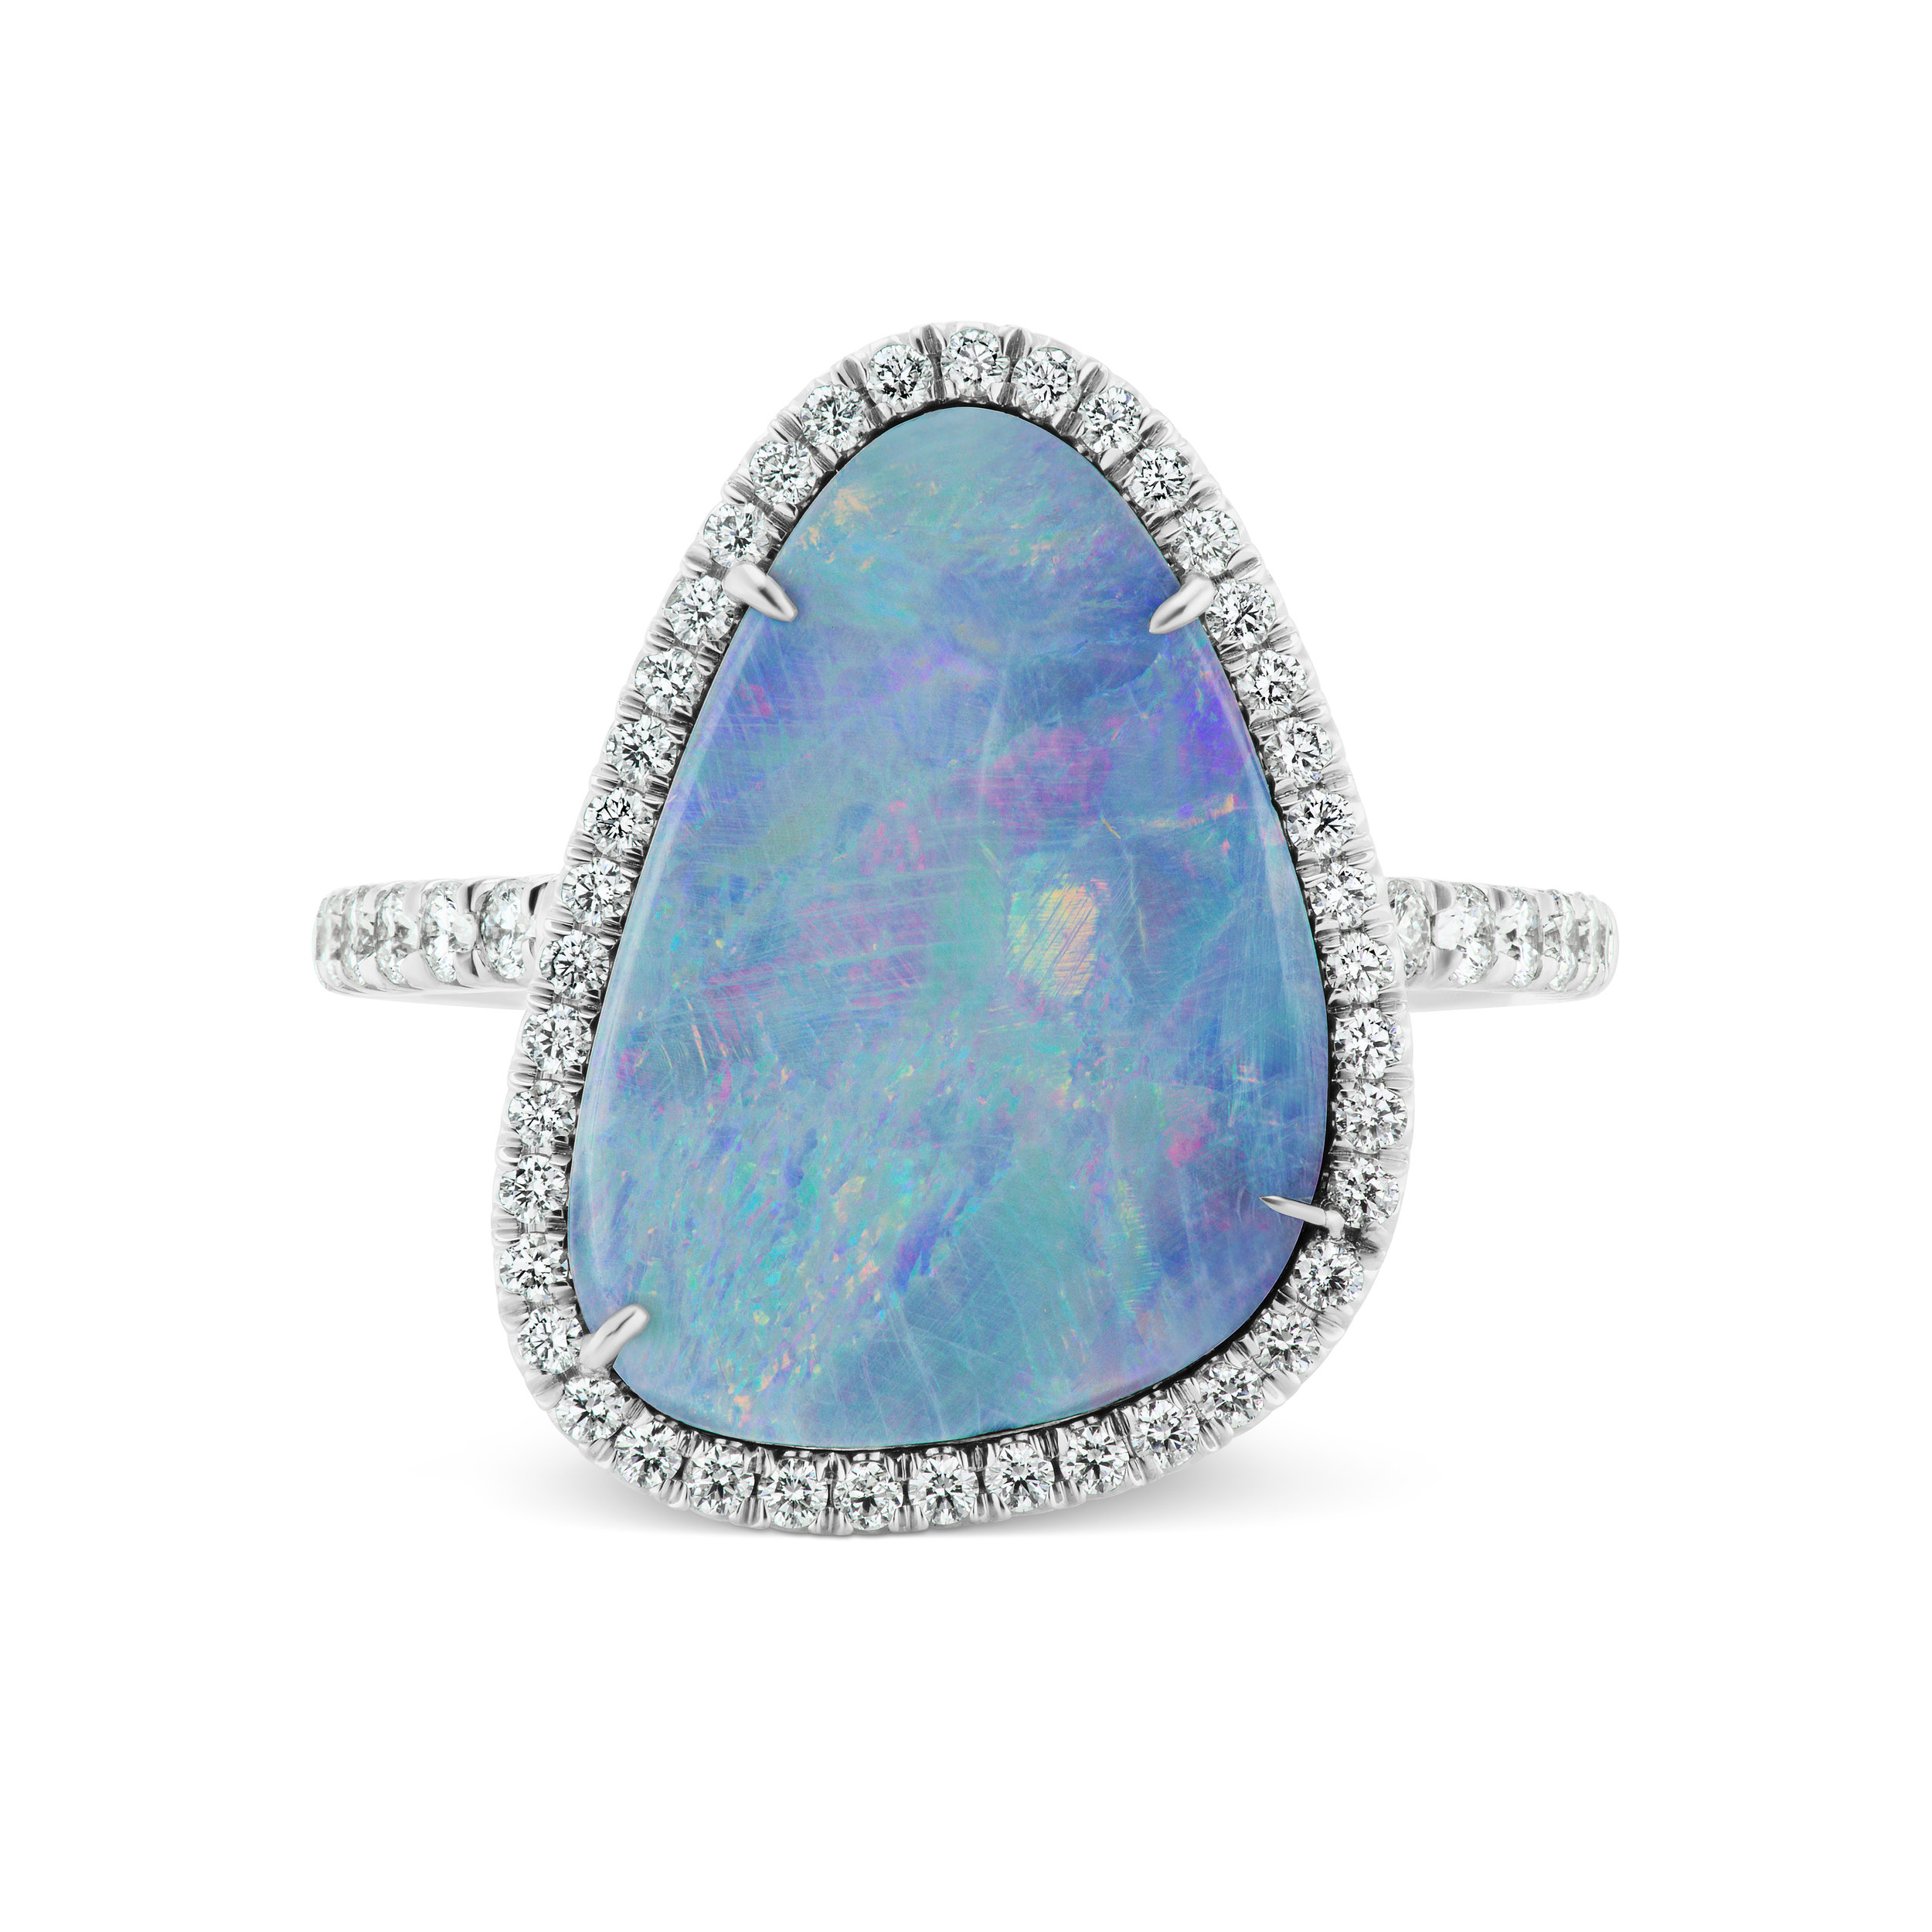 Boulder opal ring with micropavé diamond trim and band, mounted in platinum.